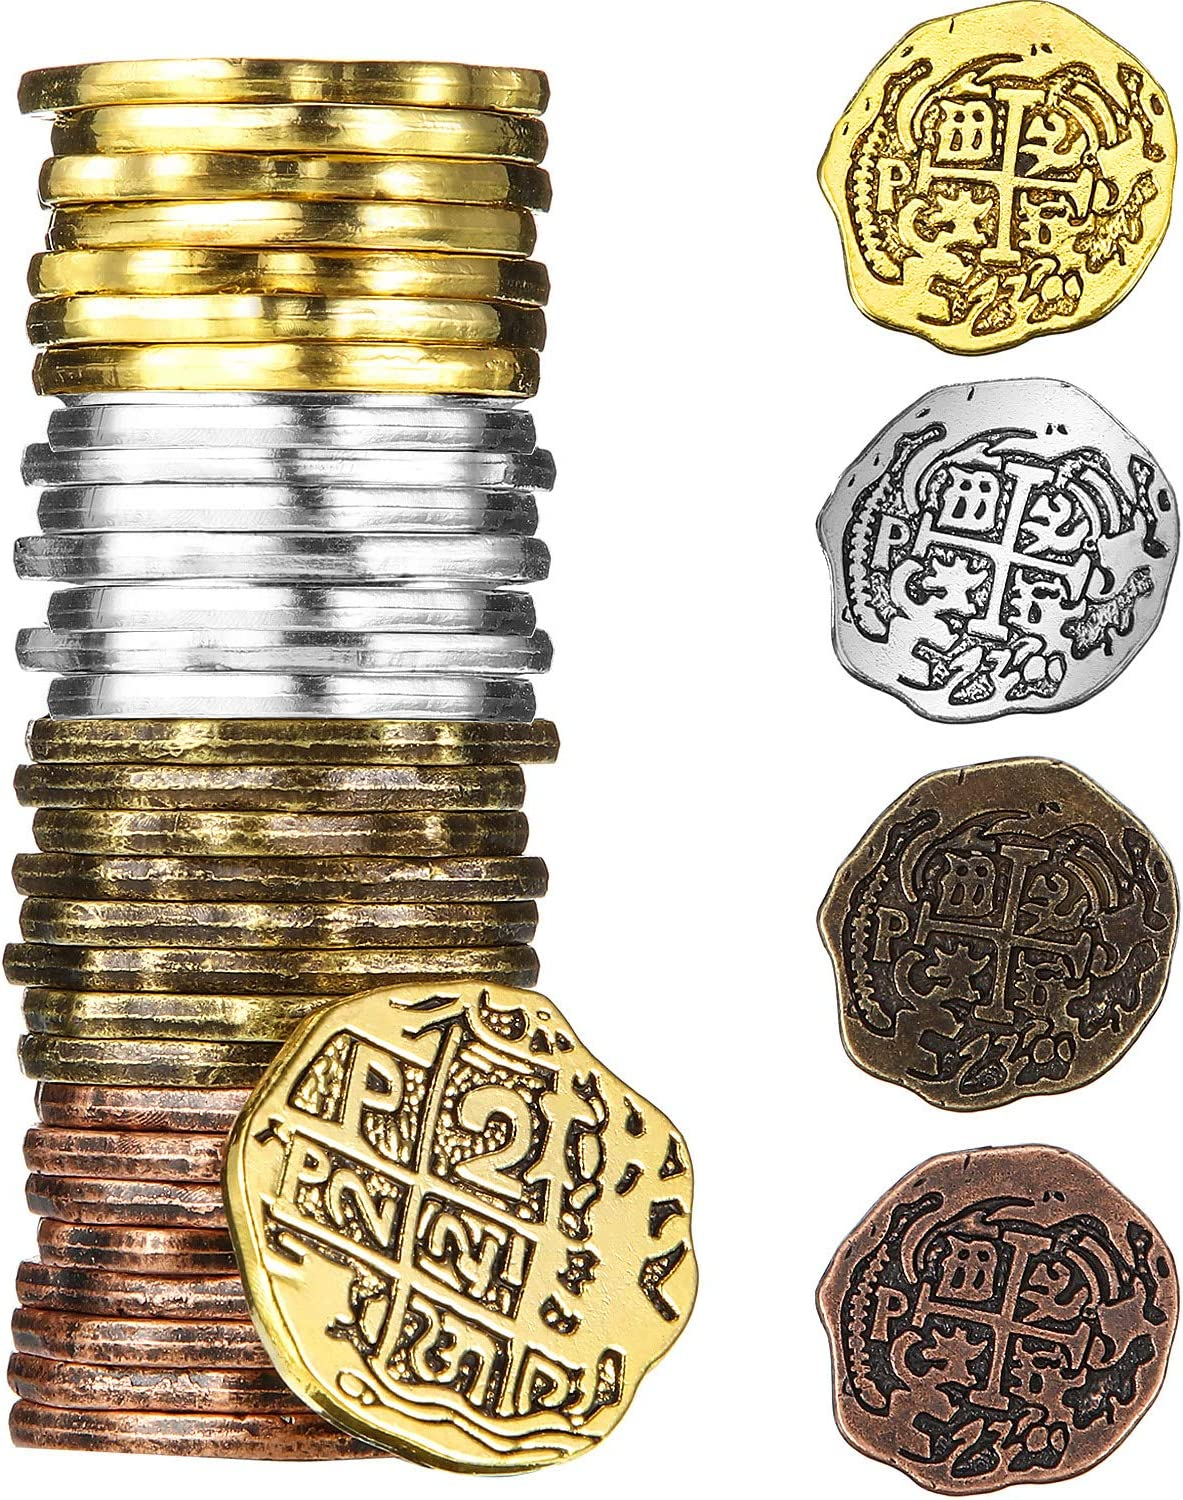 Color Set 2, 35 Pieces Hicarer Metal Pirate Coins Spanish Doubloon Replicas Pirate Treasure Coin Toys for Halloween Party Favor Decorations